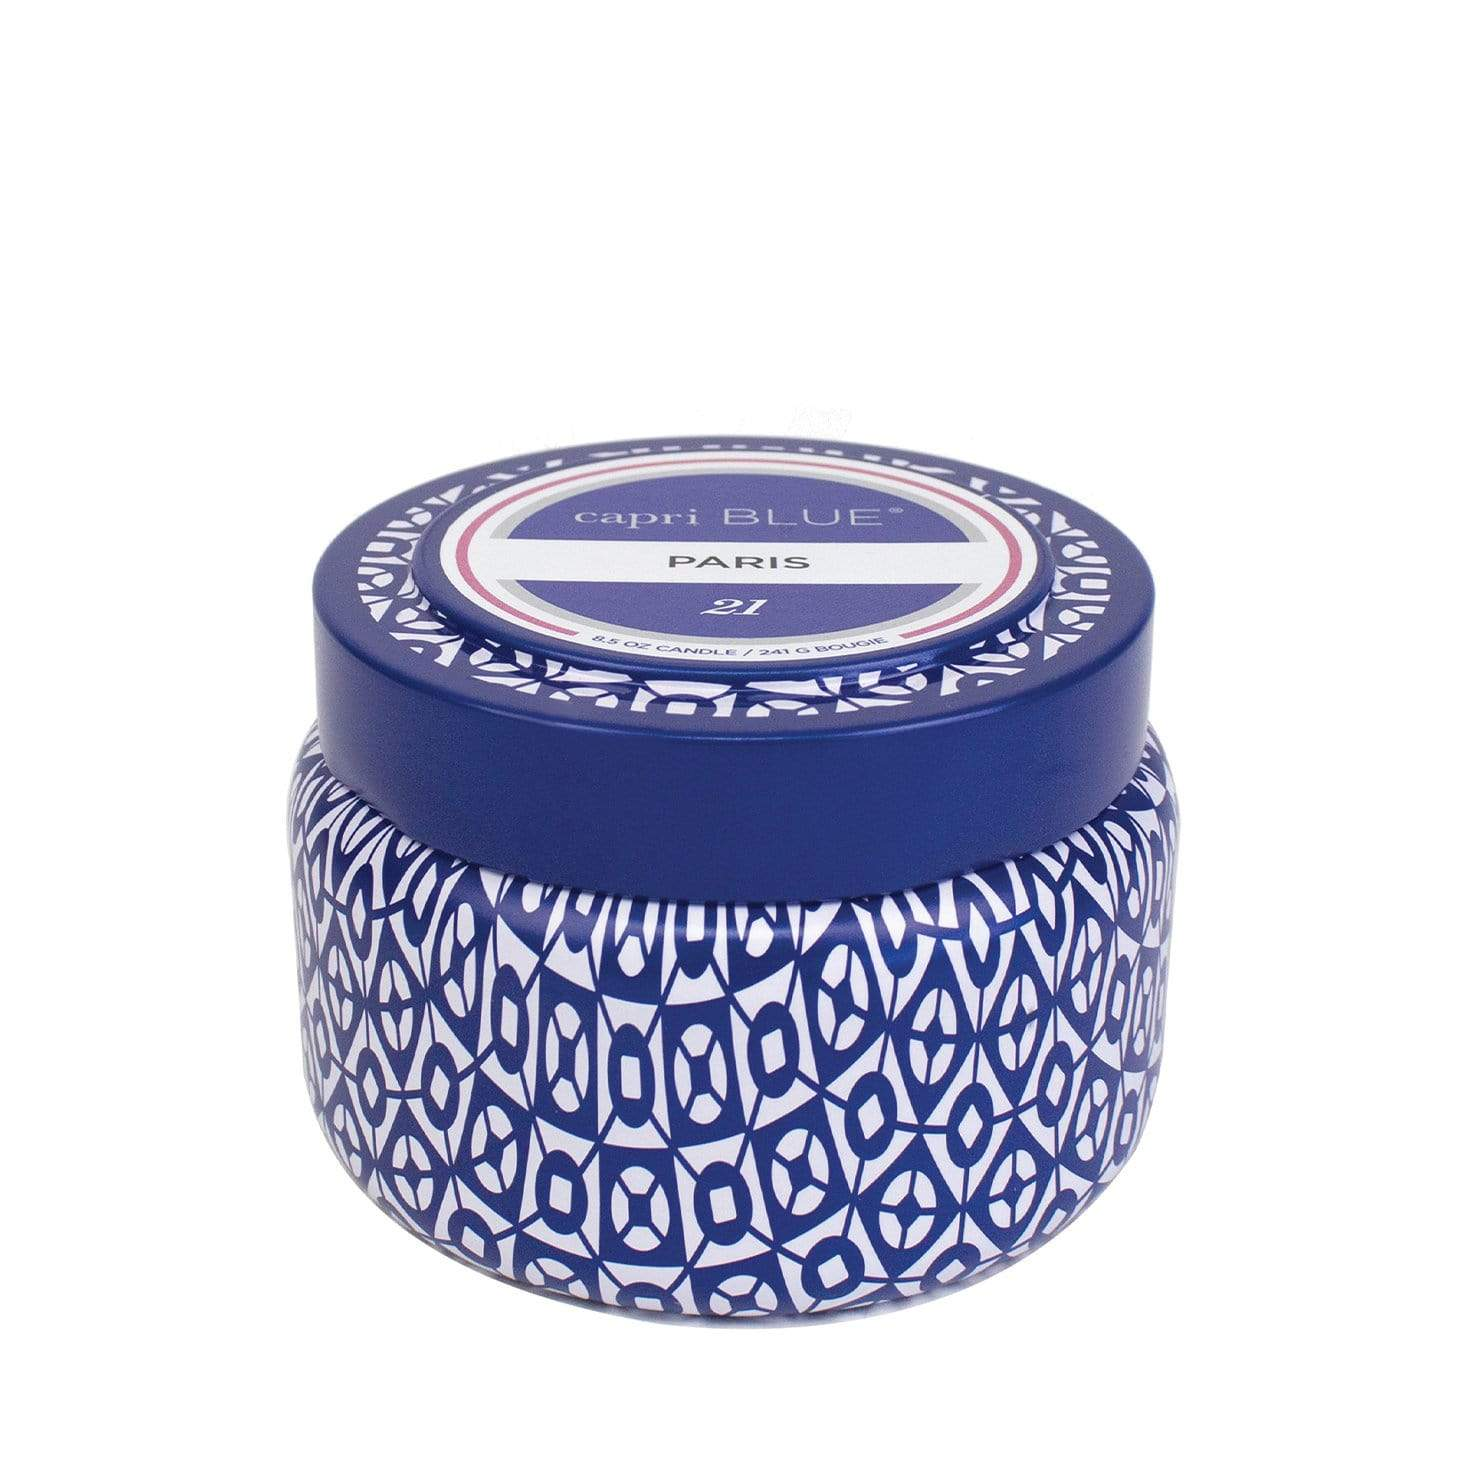 Capri Blue Travel Candle - Paris